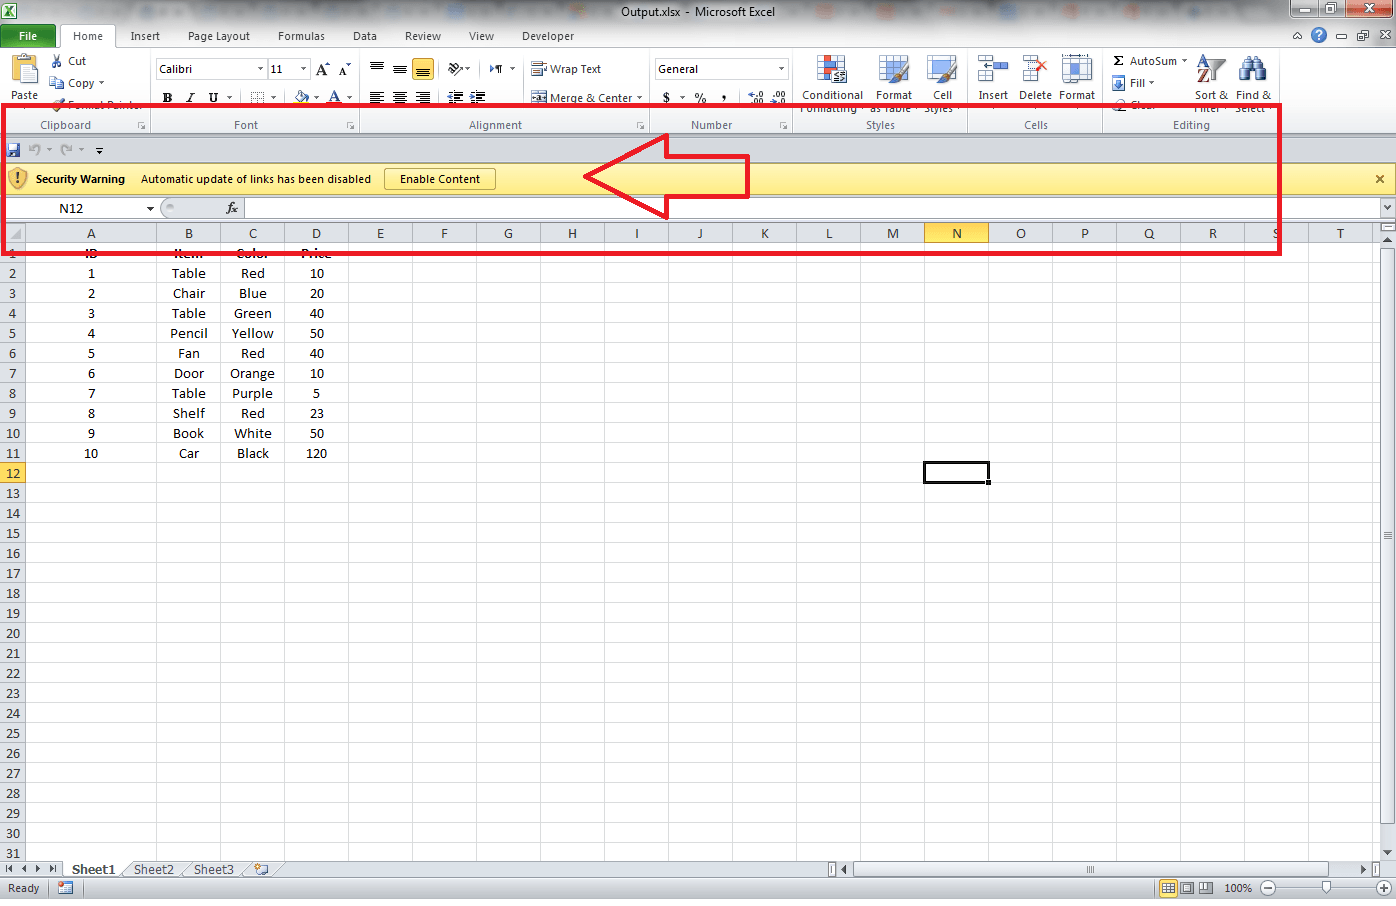 Excel Links, Security Warning